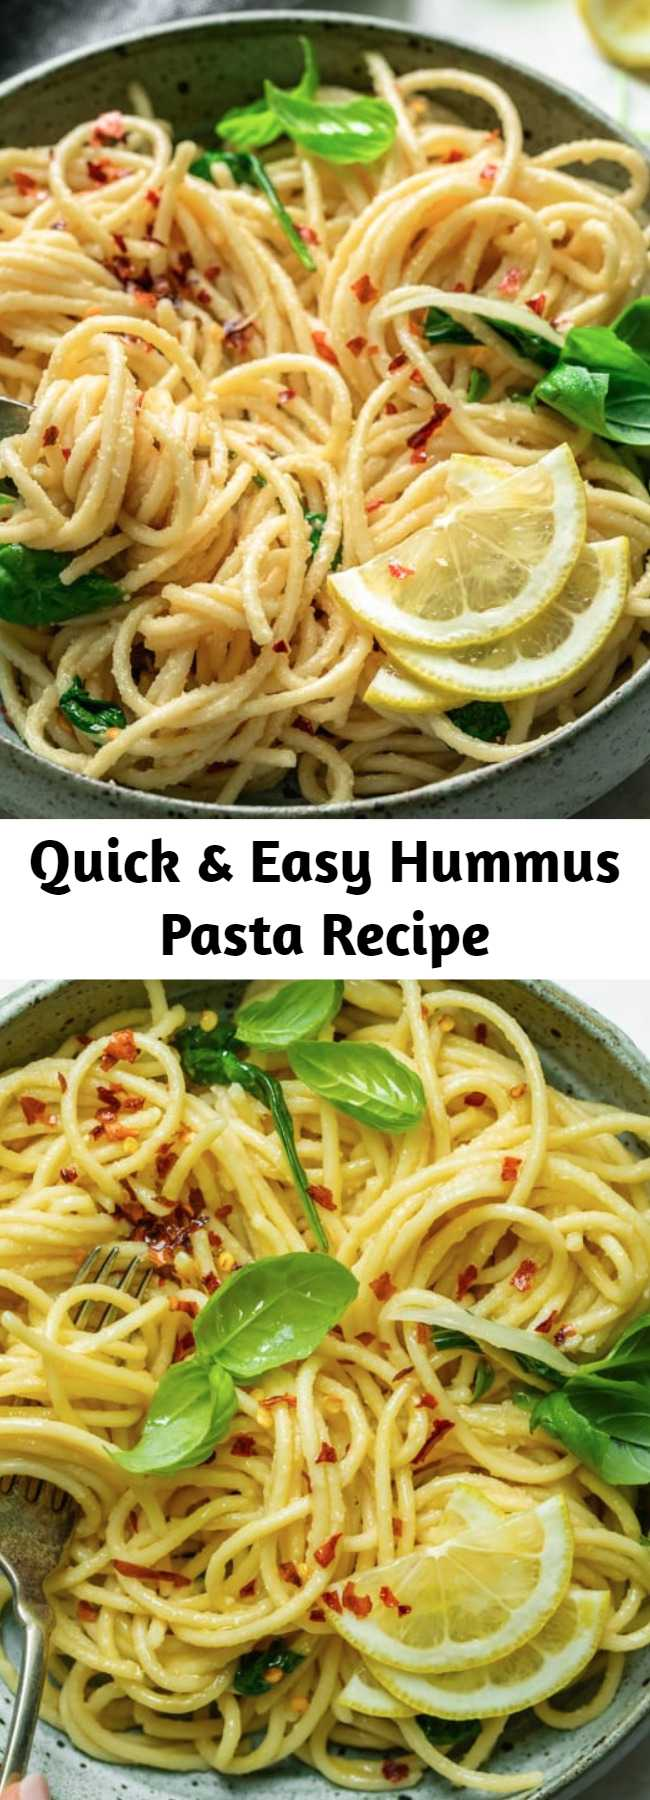 Quick & Easy Hummus Pasta Recipe - This creamy vegan Hummus Pasta is a healthy Mediterranean inspired recipe! It's all made in one pot and ready in 15 minutes - perfect for a weeknight meal! #vegan #dinner #weeknight